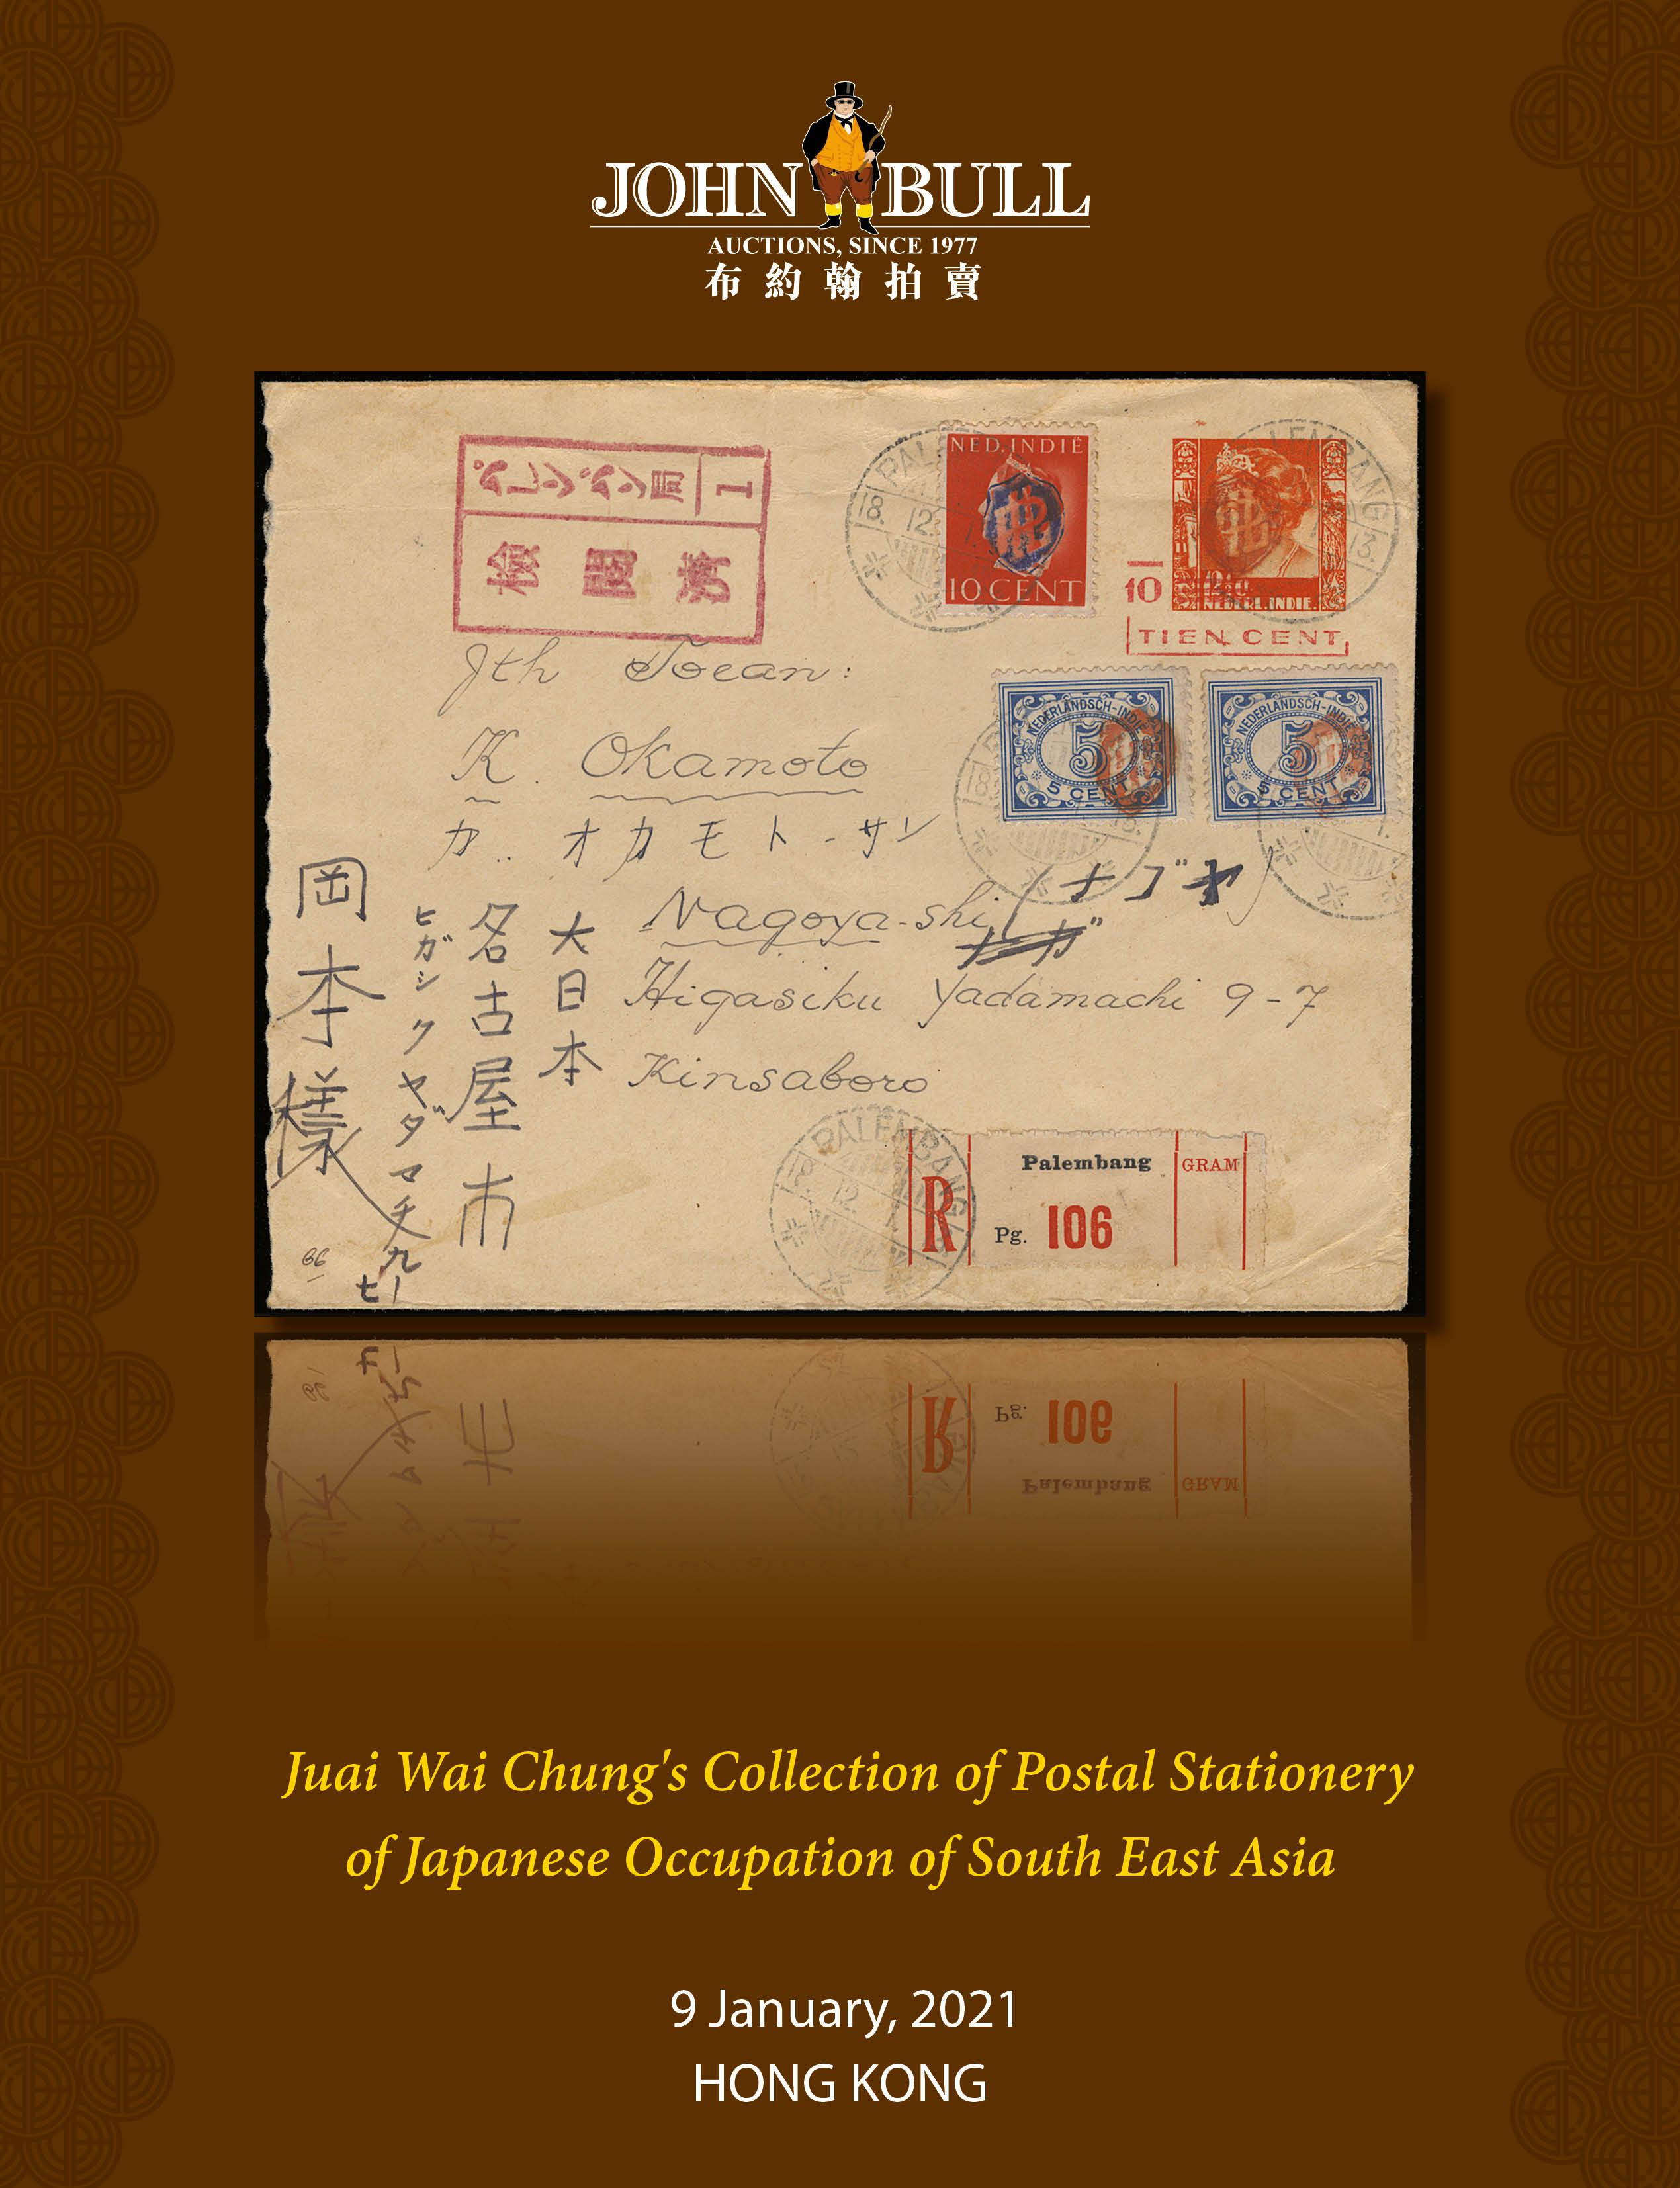 Juai Wai Chung's Collection of Postal Stationery  of Japanese Occupation of South East Asia